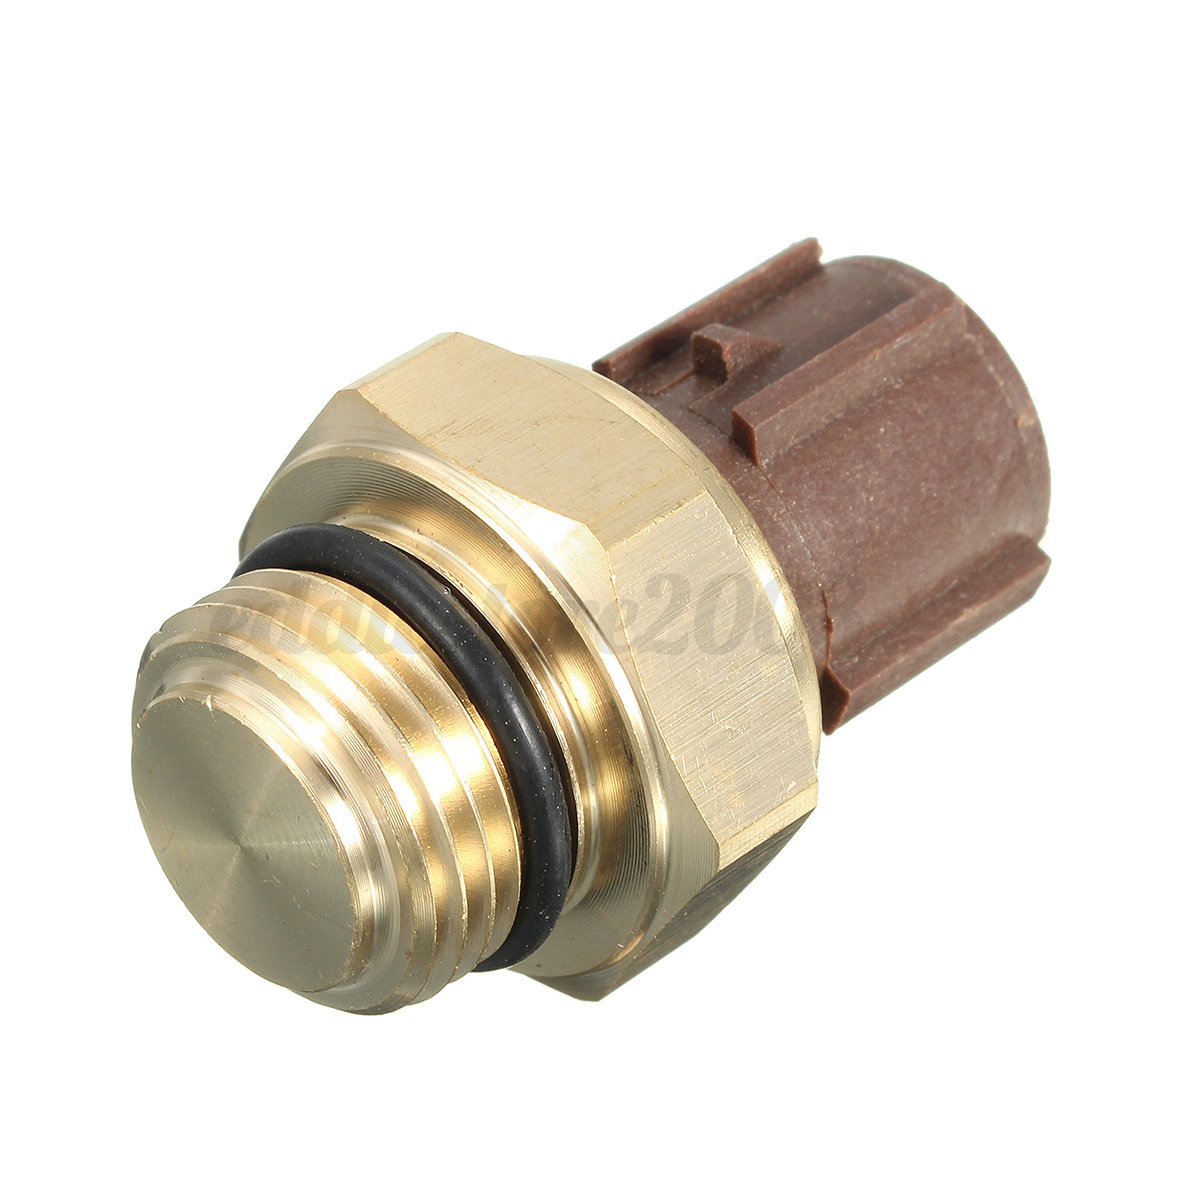 Cooling Fan Temperature Switch : Radiator coolant fan water temperature switch sensor for